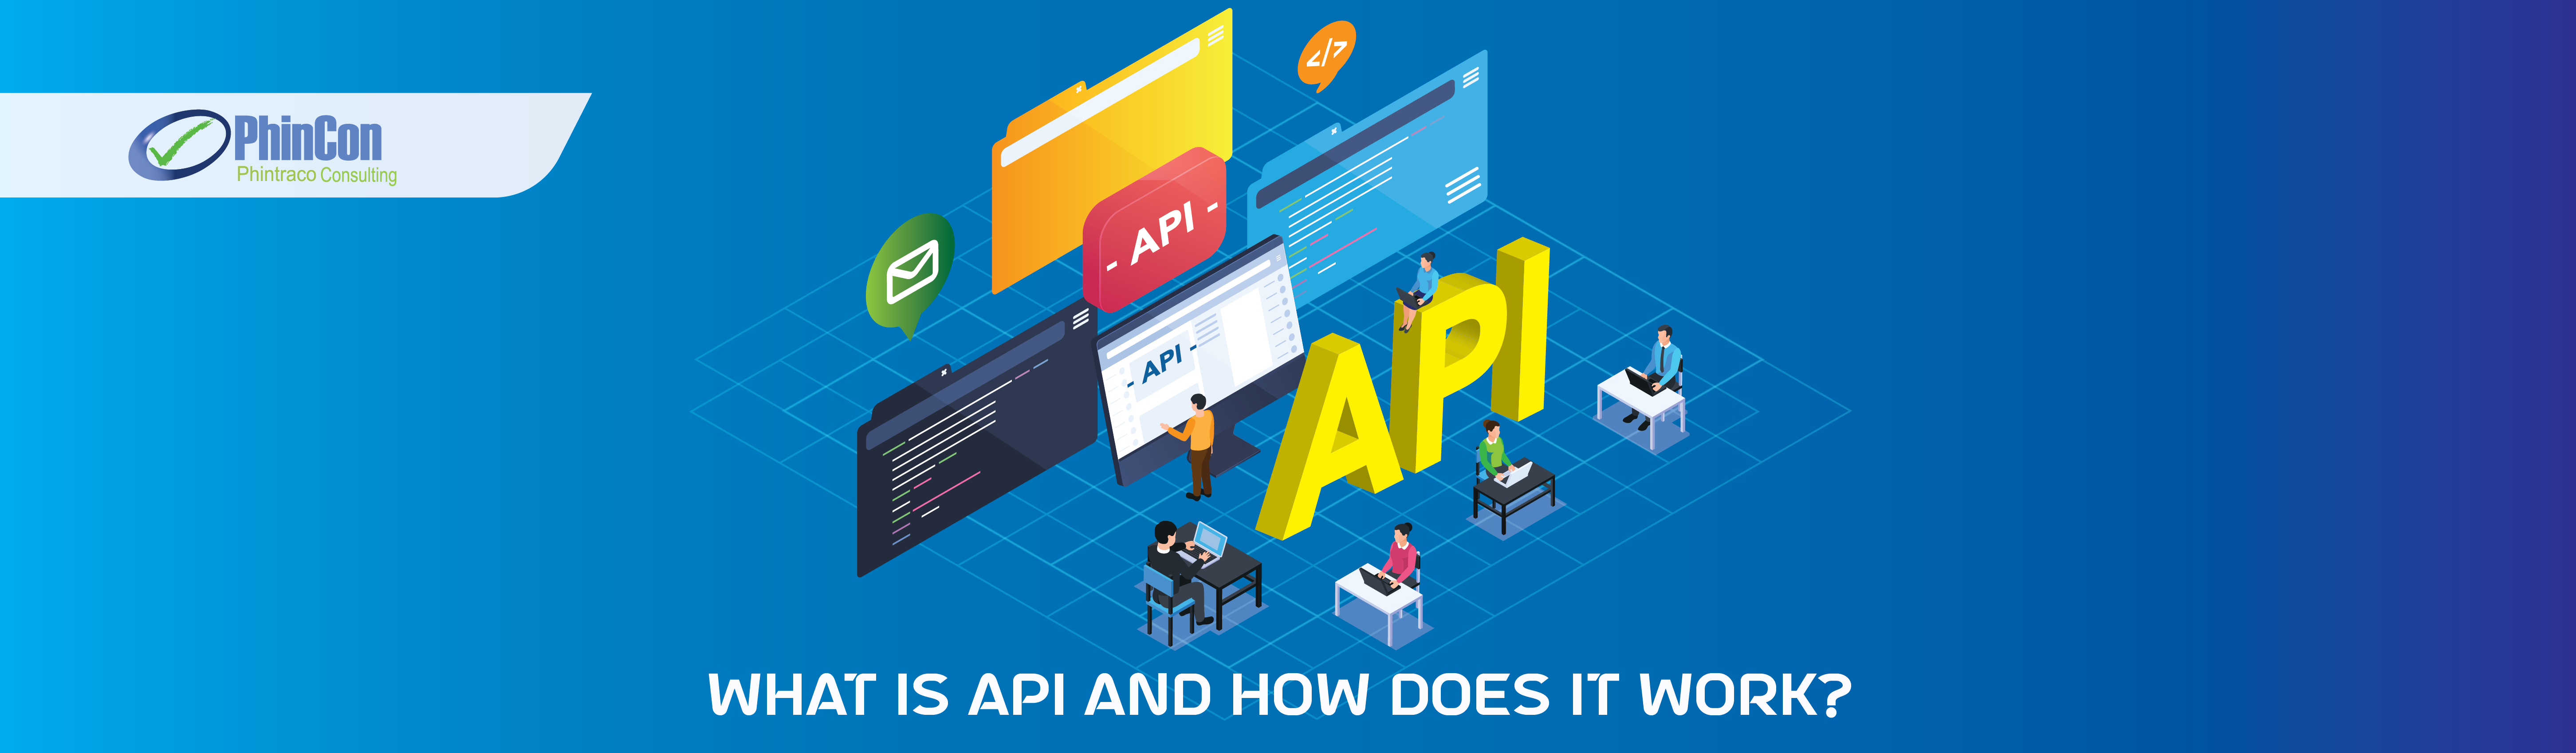 What is API